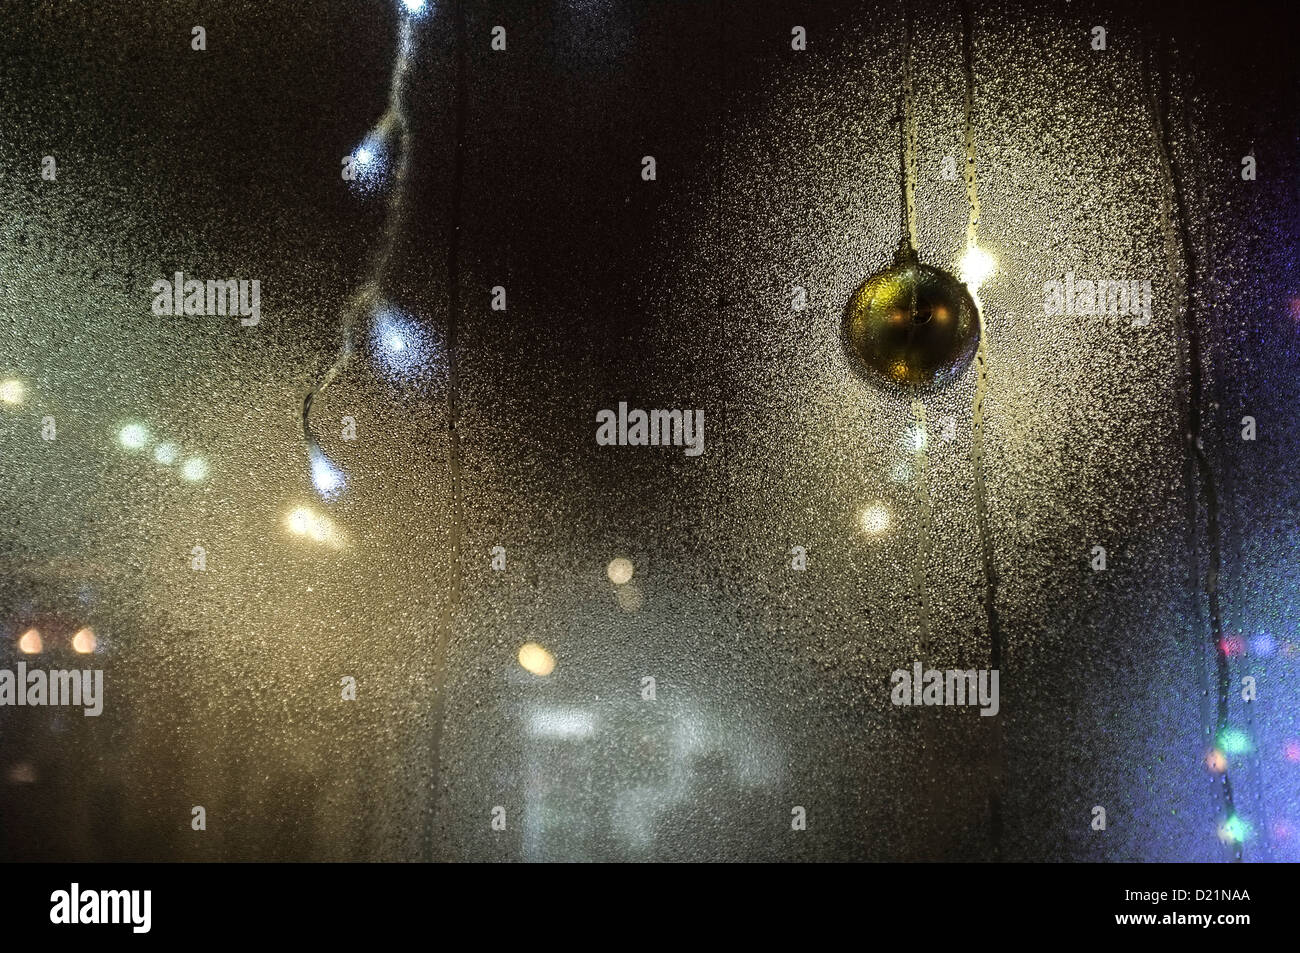 Condensation on a shop window, with bright lights glowing sparkling shining through, night, UK - Stock Image